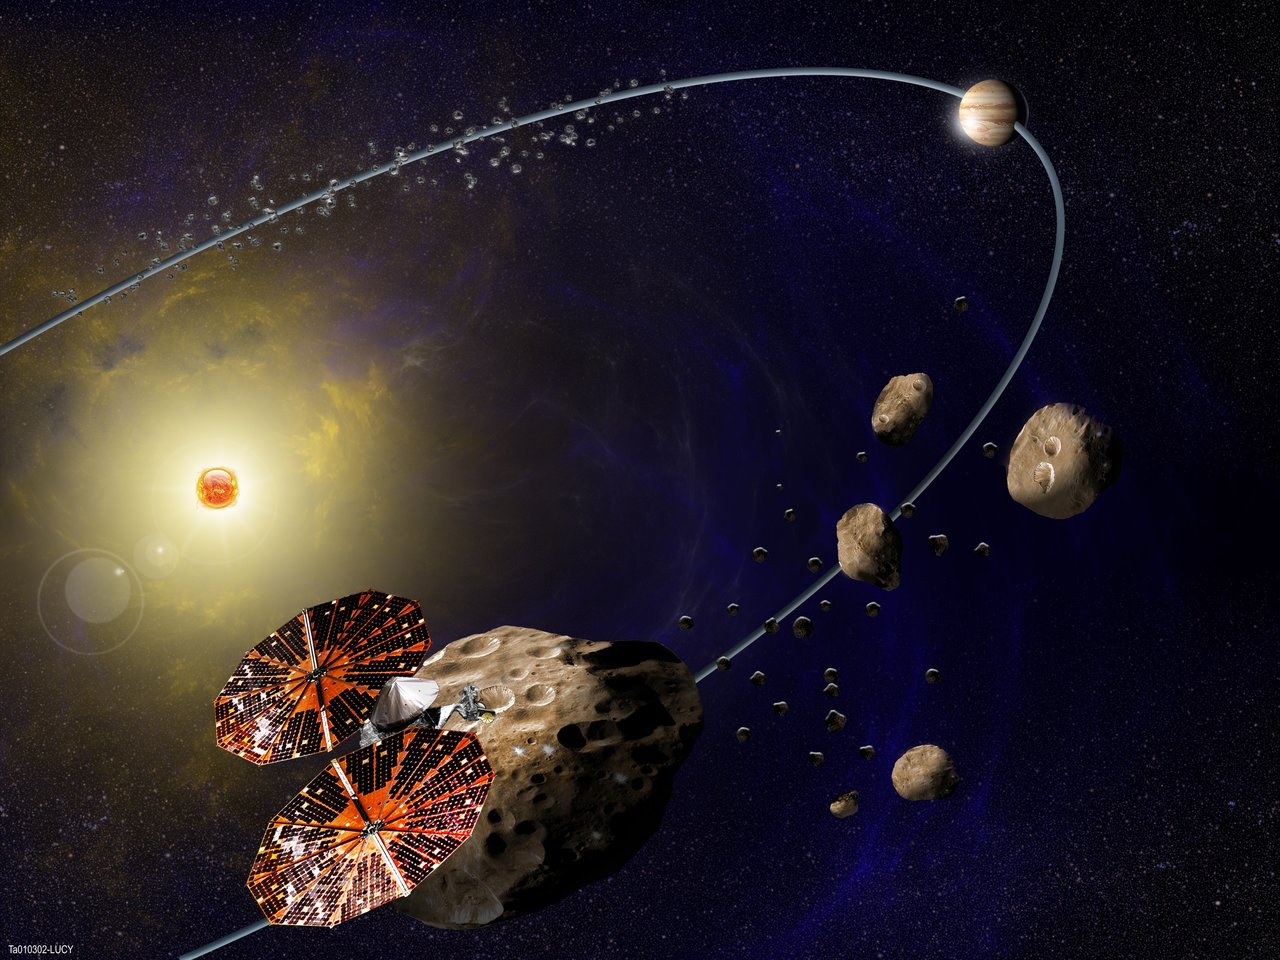 spacecraft and two groups of asteroids in orbit around the sun